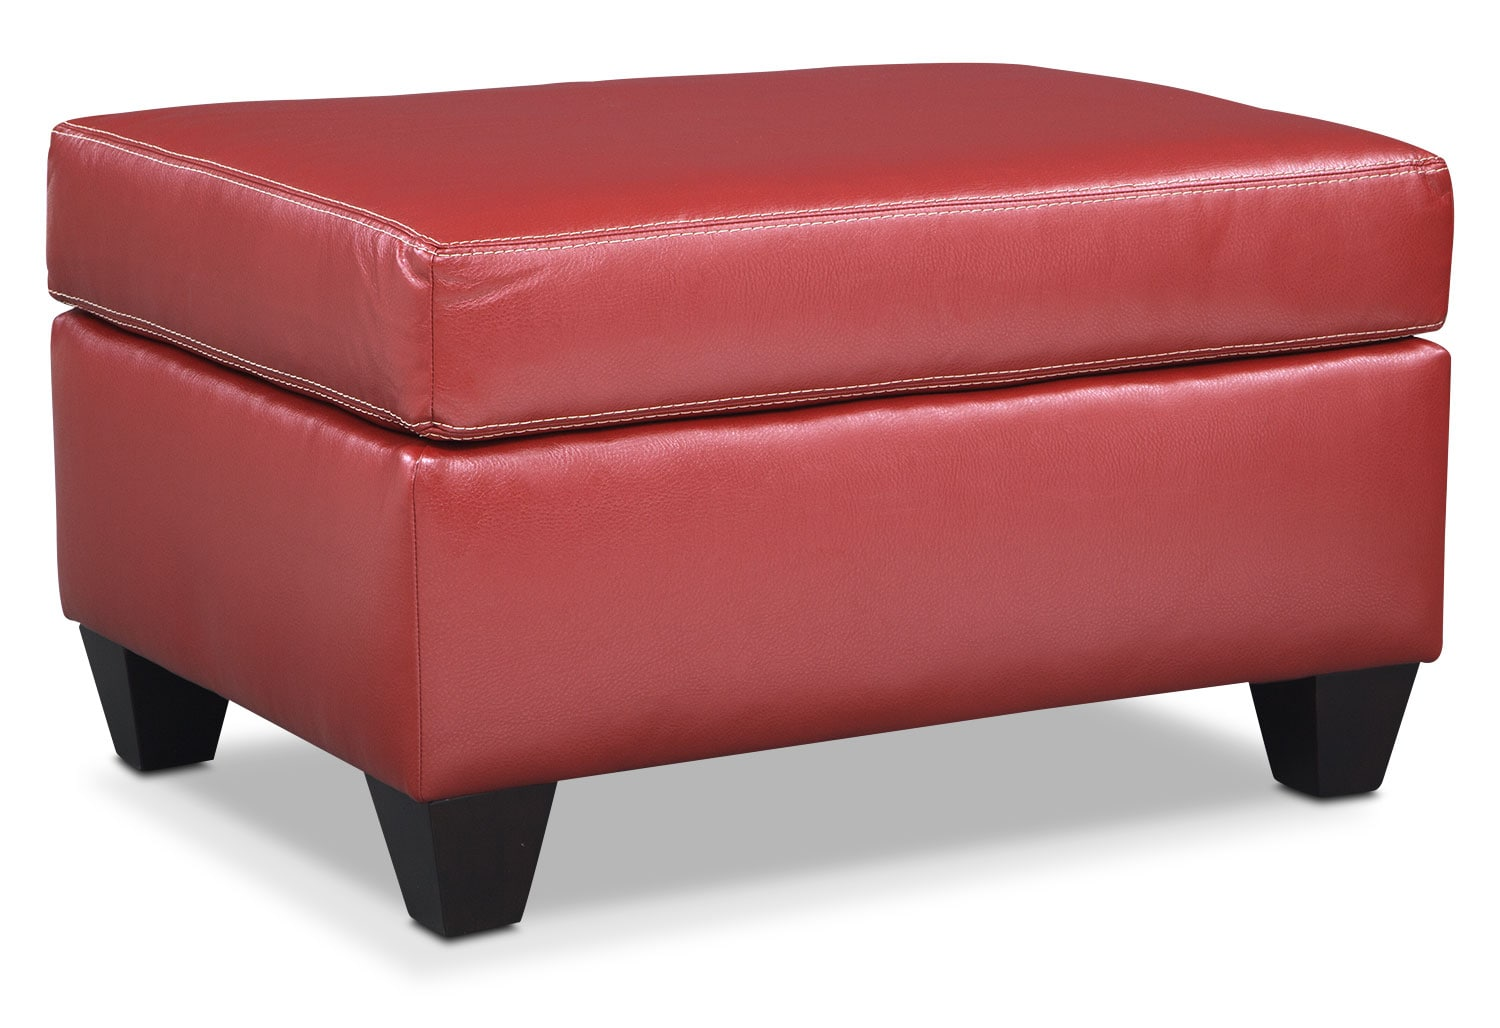 Living Room Furniture - Rialto Ottoman - Cardinal